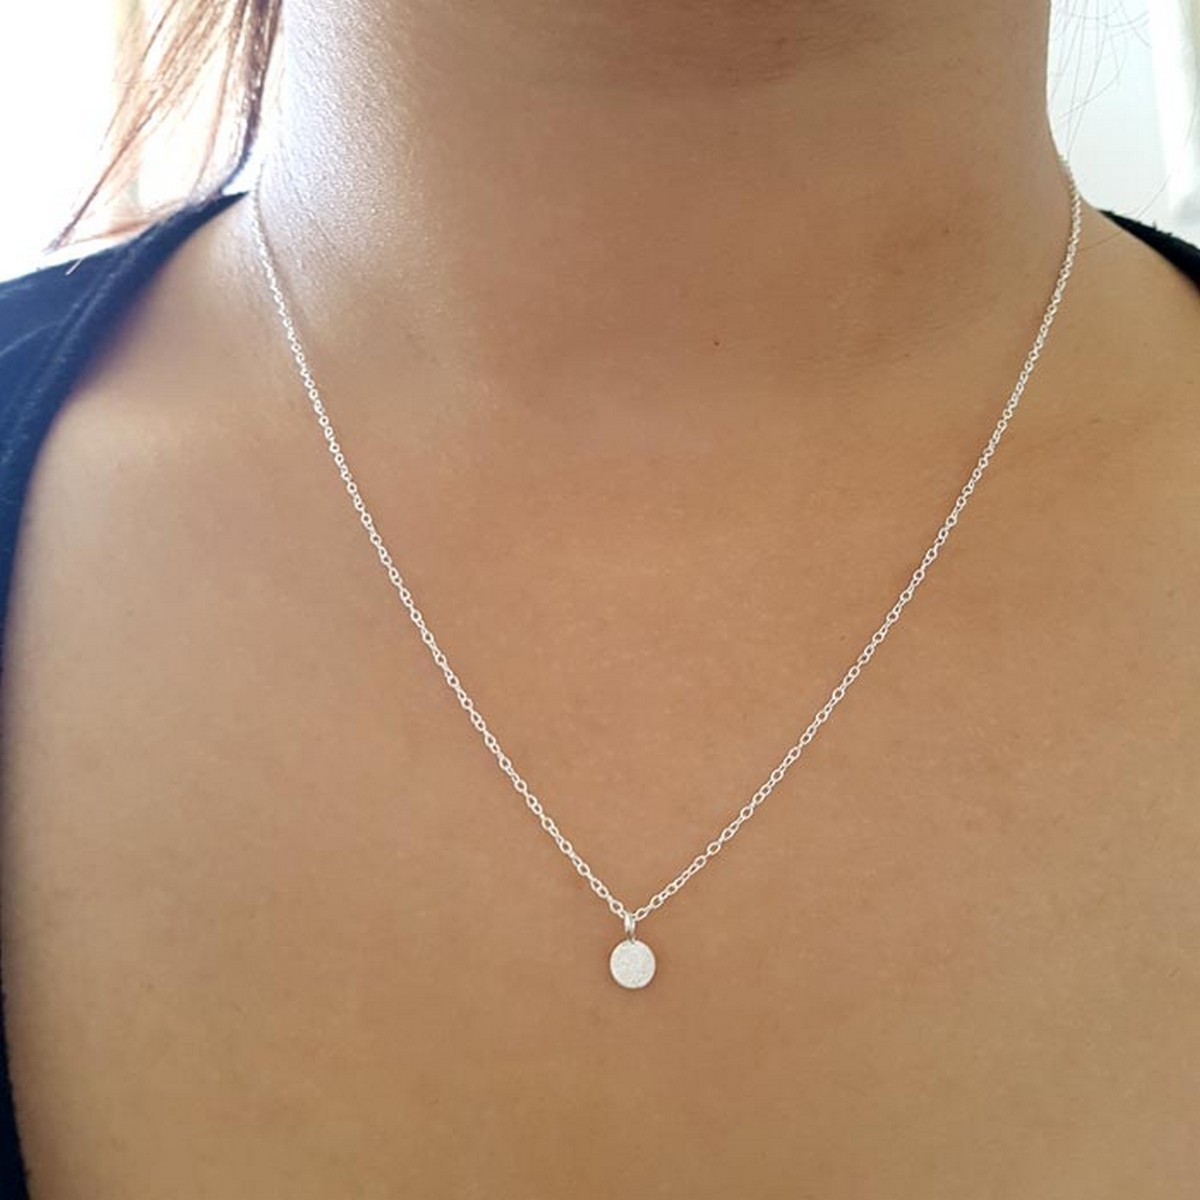 Coin | Ketting 925 zilver